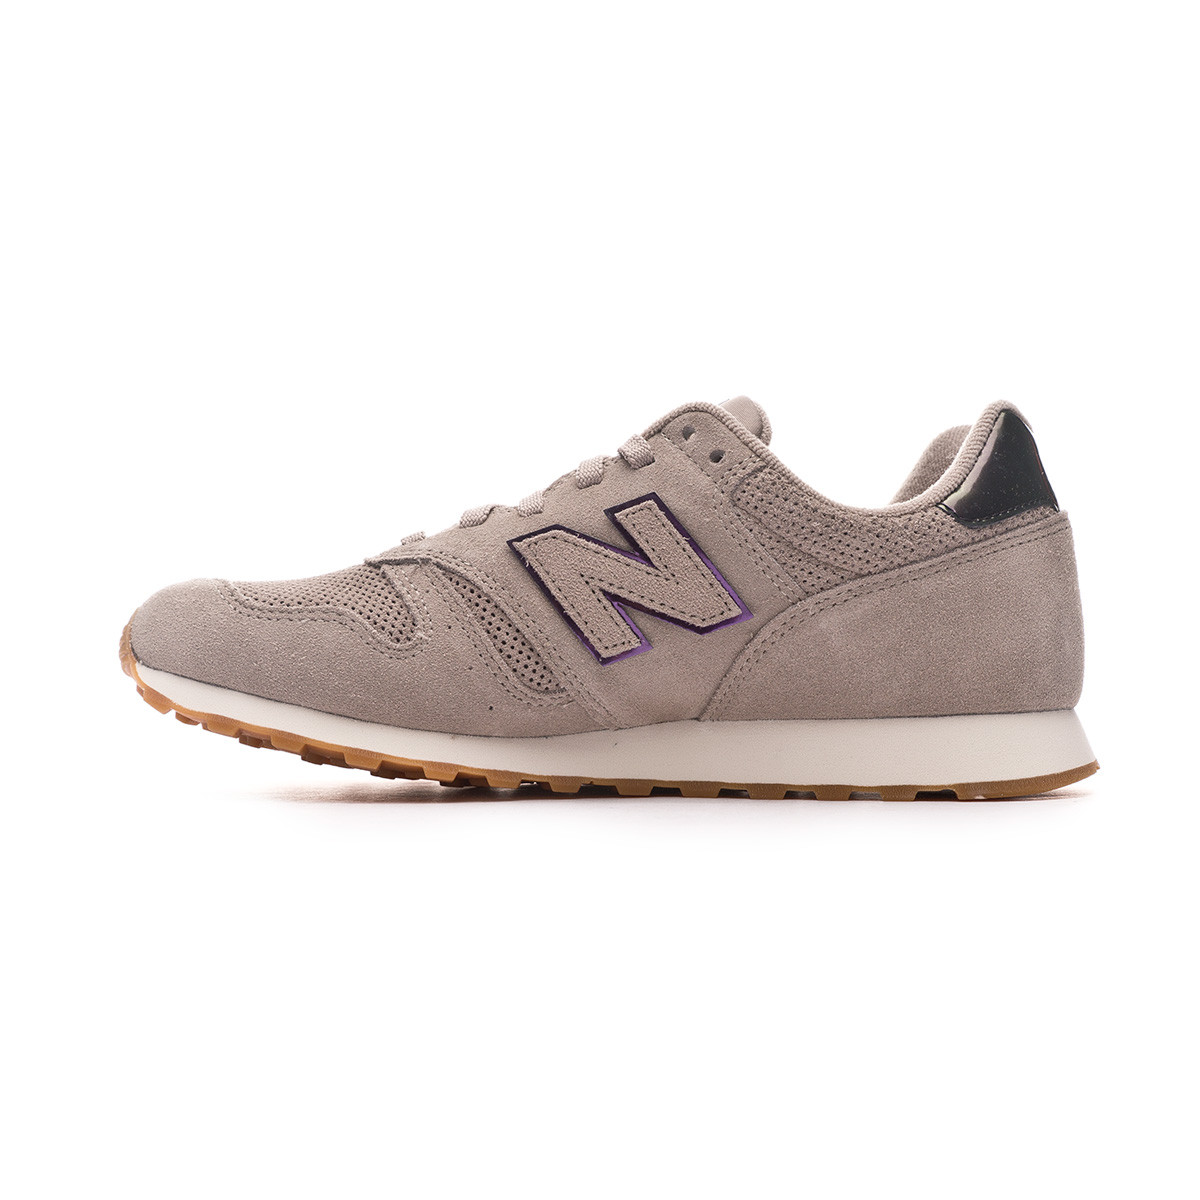 Tenis New Balance 373 v2 Classic Mujer